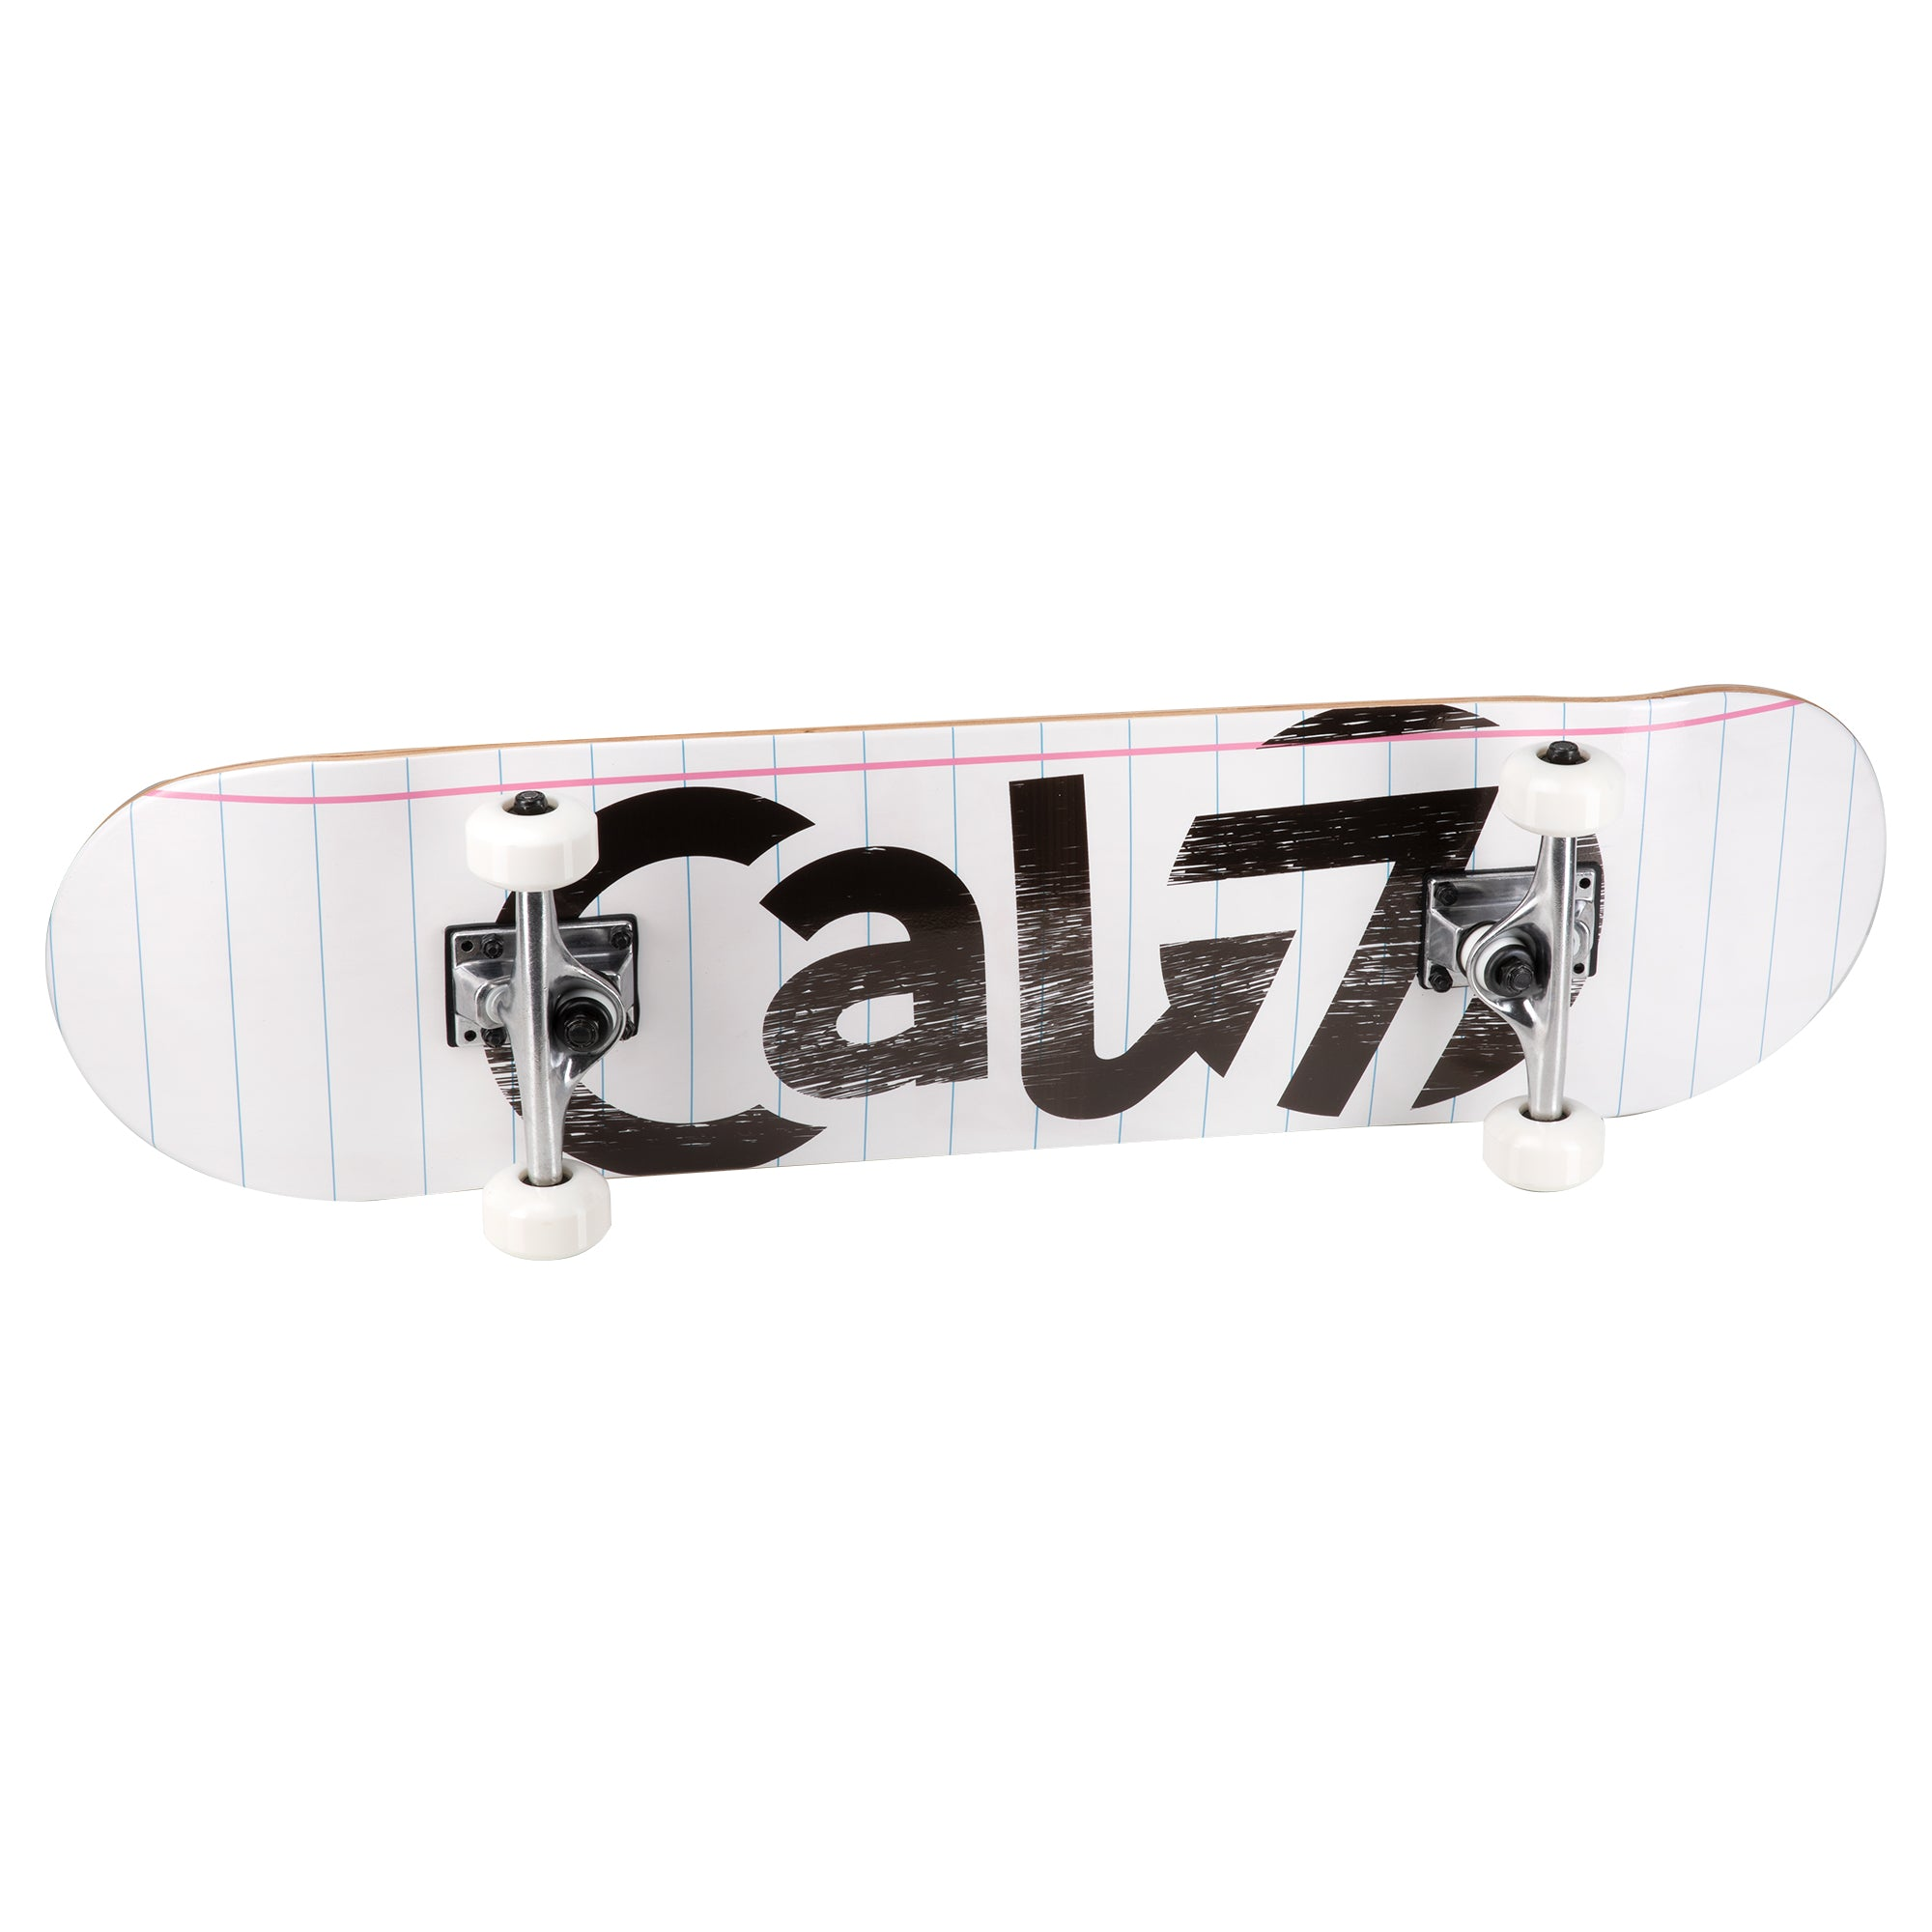 Cal 7 complete 8-inch Dropout skateboard with notebook graphic